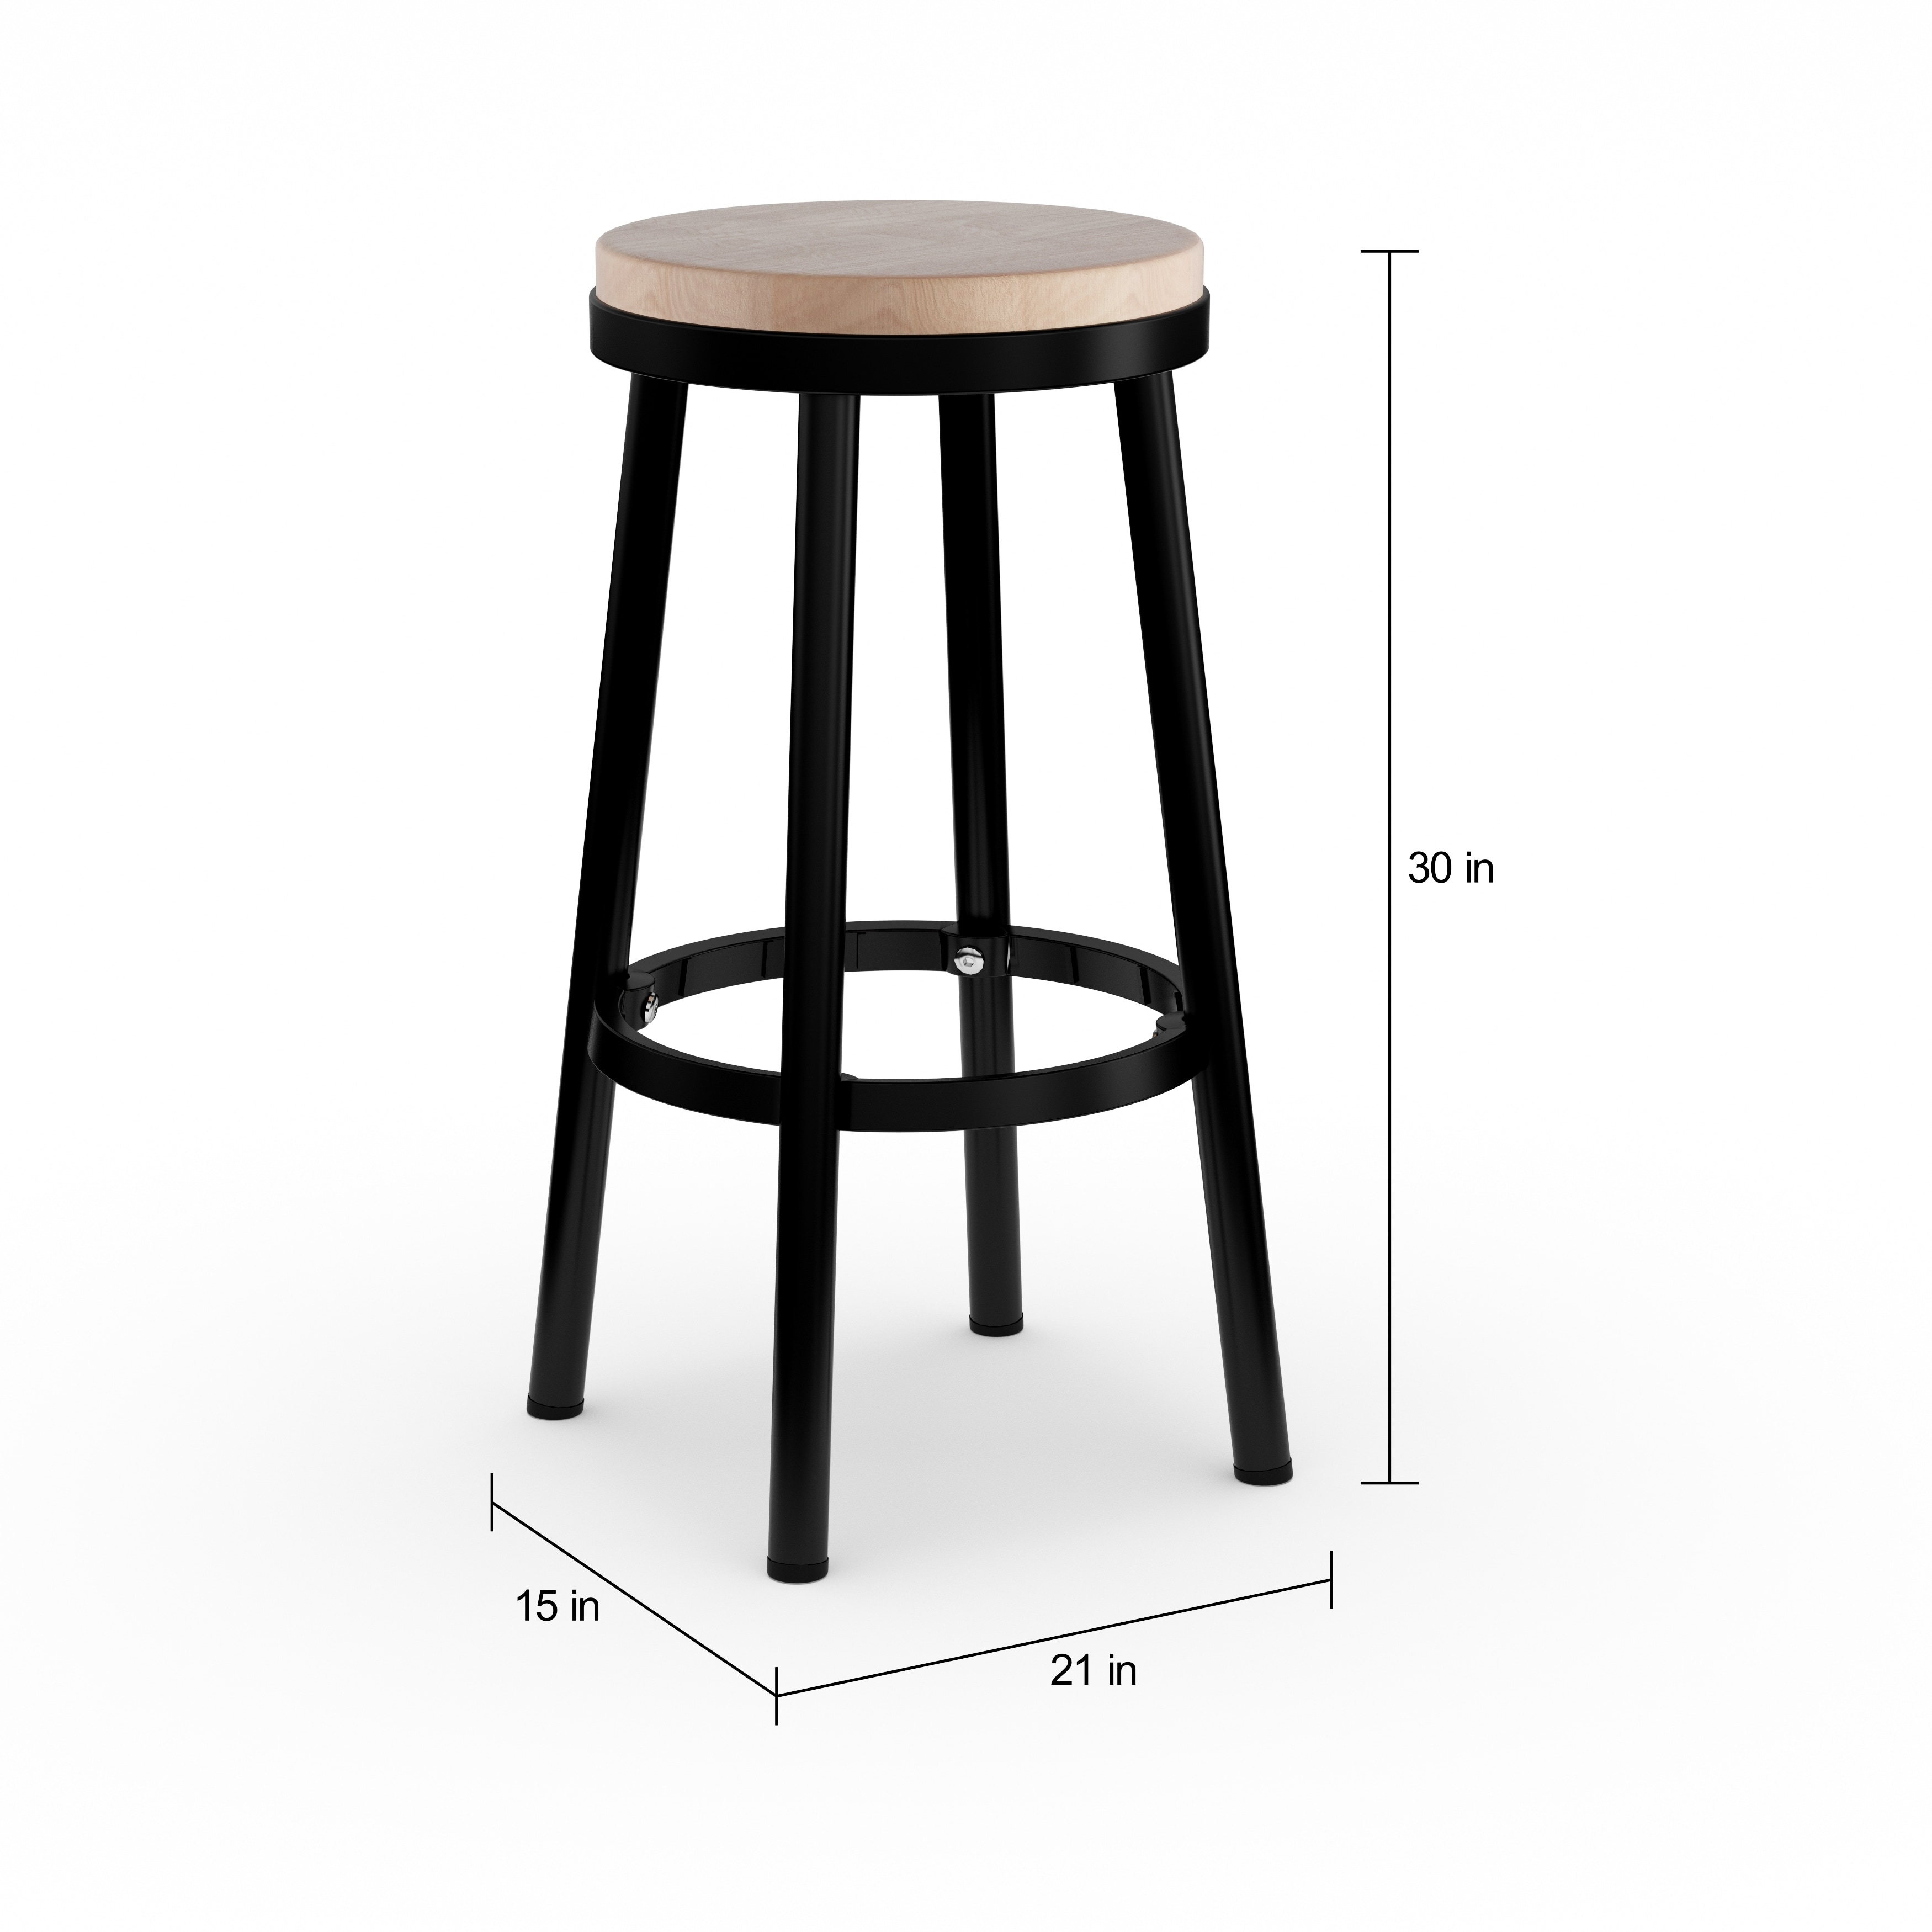 Magnificent Porch Den Mcmicken Modern 30 Inch Round Backless Metal Bar Stool With Footrest Squirreltailoven Fun Painted Chair Ideas Images Squirreltailovenorg